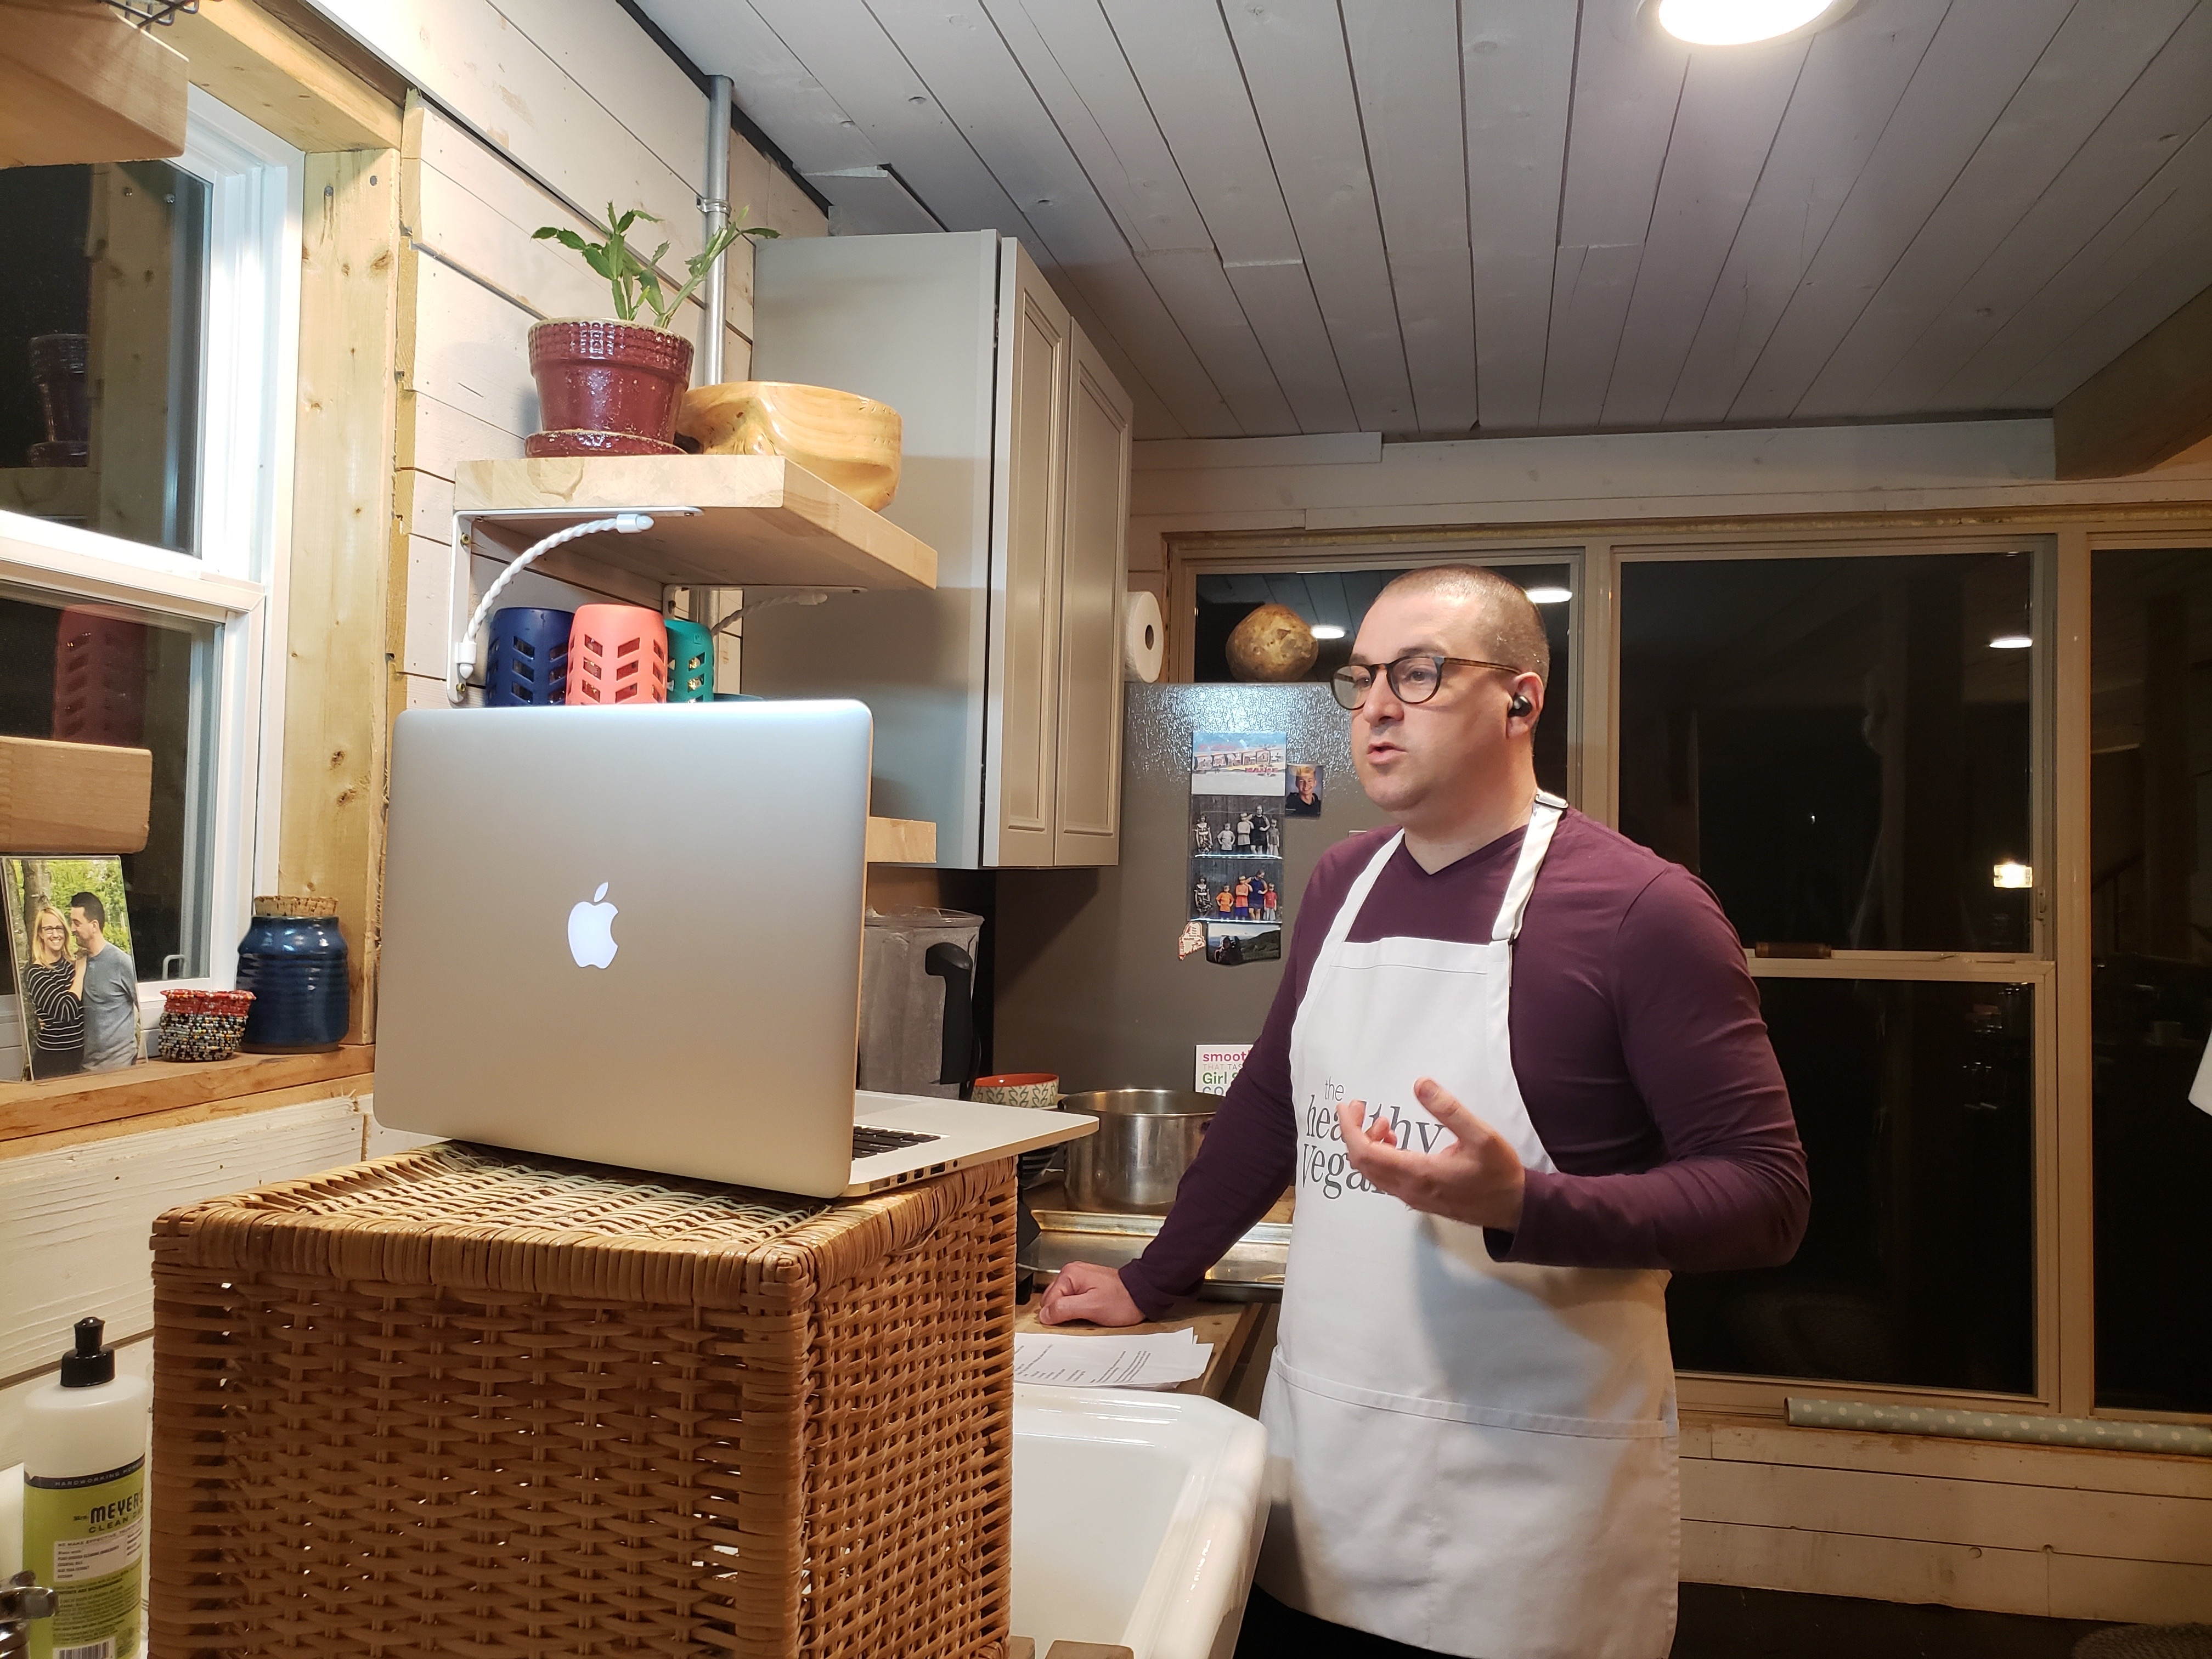 Colin McCullough taught patrons of the Sutton Public Library how to make vegan soups recently. McCullough, a former Millbury resident now living in Maine, used to bring all his cooking utensils to libraries around Massachusetts for in-person classes. He has now adapted to virtual classes from his home kitchen.